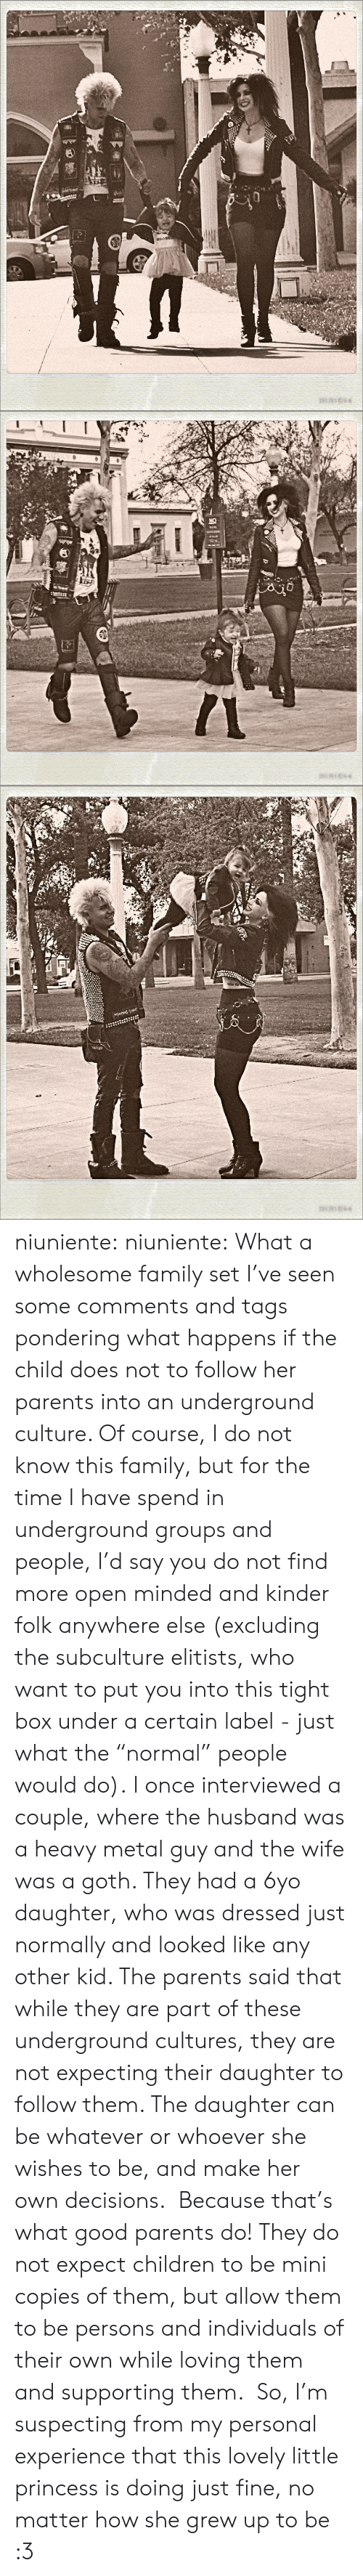 "Supporting: asANE   NO niuniente:  niuniente: What a wholesome family set I've seen some comments and tags pondering what happens if the child does not to follow her parents into an underground culture. Of course, I do not know this family, but for the time I have spend in underground groups and people, I'd say you do not find more open minded and kinder folk anywhere else (excluding the subculture elitists, who want to put you into this tight box under a certain label - just what the ""normal"" people would do). I once interviewed a couple, where the husband was a heavy metal guy and the wife was a goth. They had a 6yo daughter, who was dressed just normally and looked like any other kid. The parents said that while they are part of these underground cultures, they are not expecting their daughter to follow them. The daughter can be whatever or whoever she wishes to be, and make her own decisions.  Because that's what good parents do! They do not expect children to be mini copies of them, but allow them to be persons and individuals of their own while loving them and supporting them.  So, I'm suspecting from my personal experience that this lovely little princess is doing just fine, no matter how she grew up to be :3"